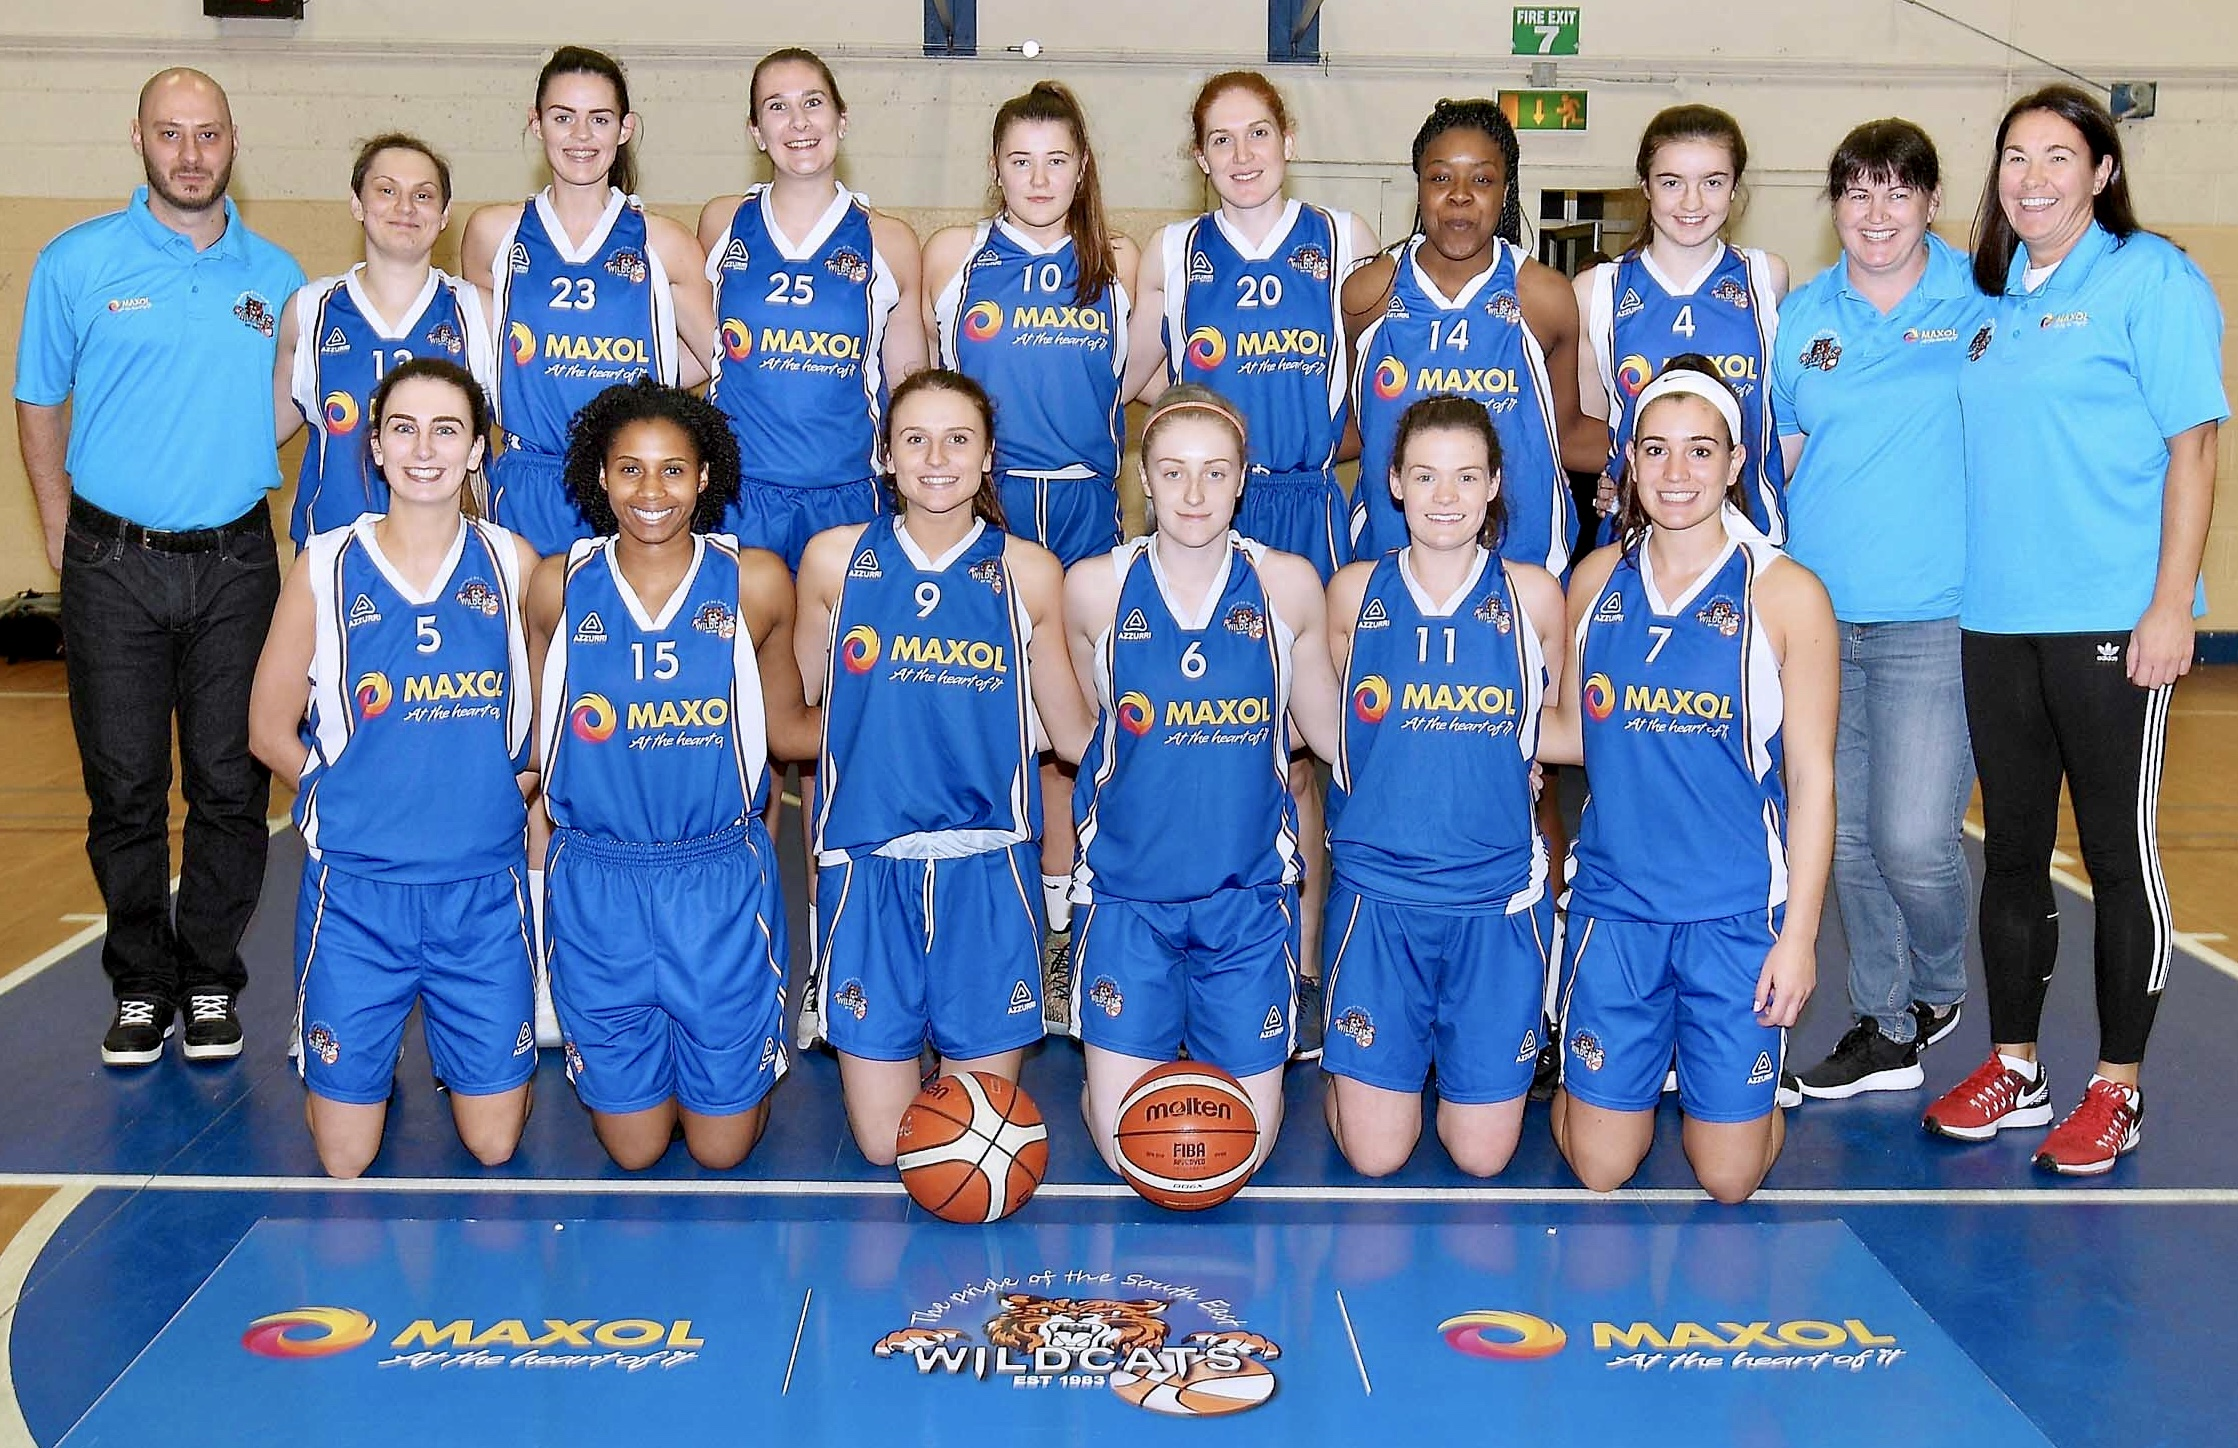 No joy for Waterford Basketball sides in yesterday's action